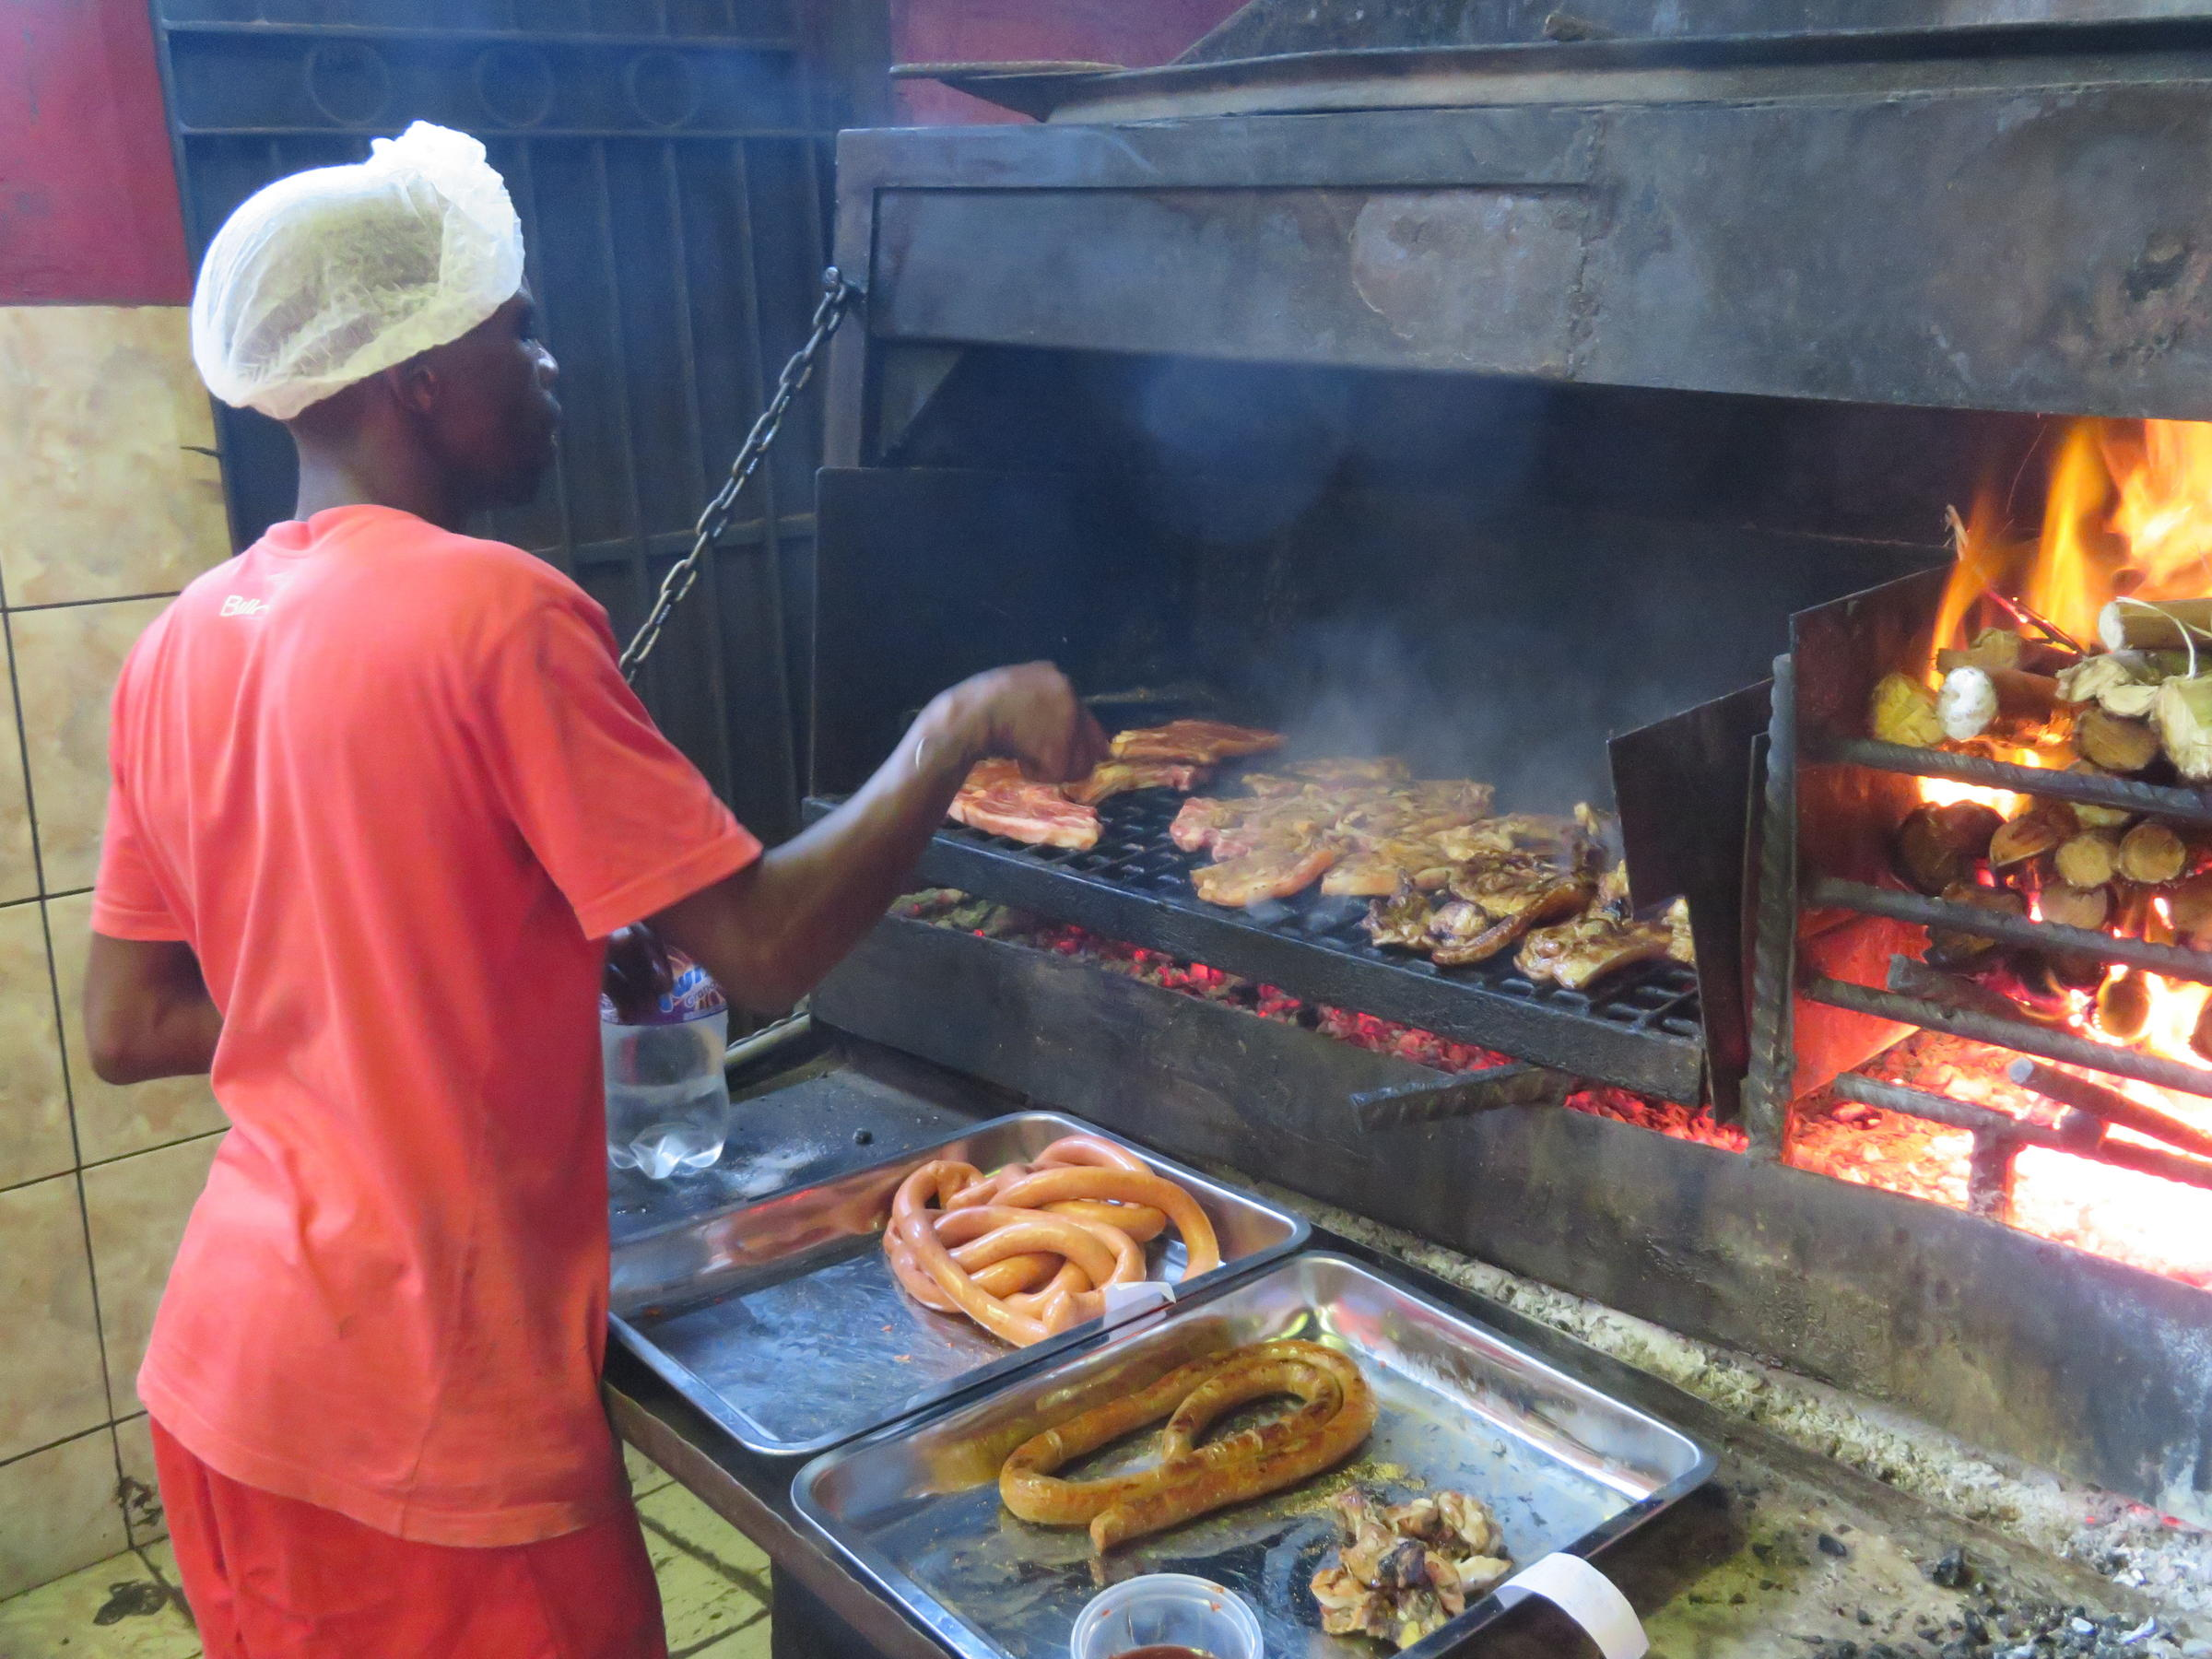 Braai Is South African For Barbecue Here Meat Roasted Over Wood At Mzolis A Popular Butcher And Grill In Gugulethu Township